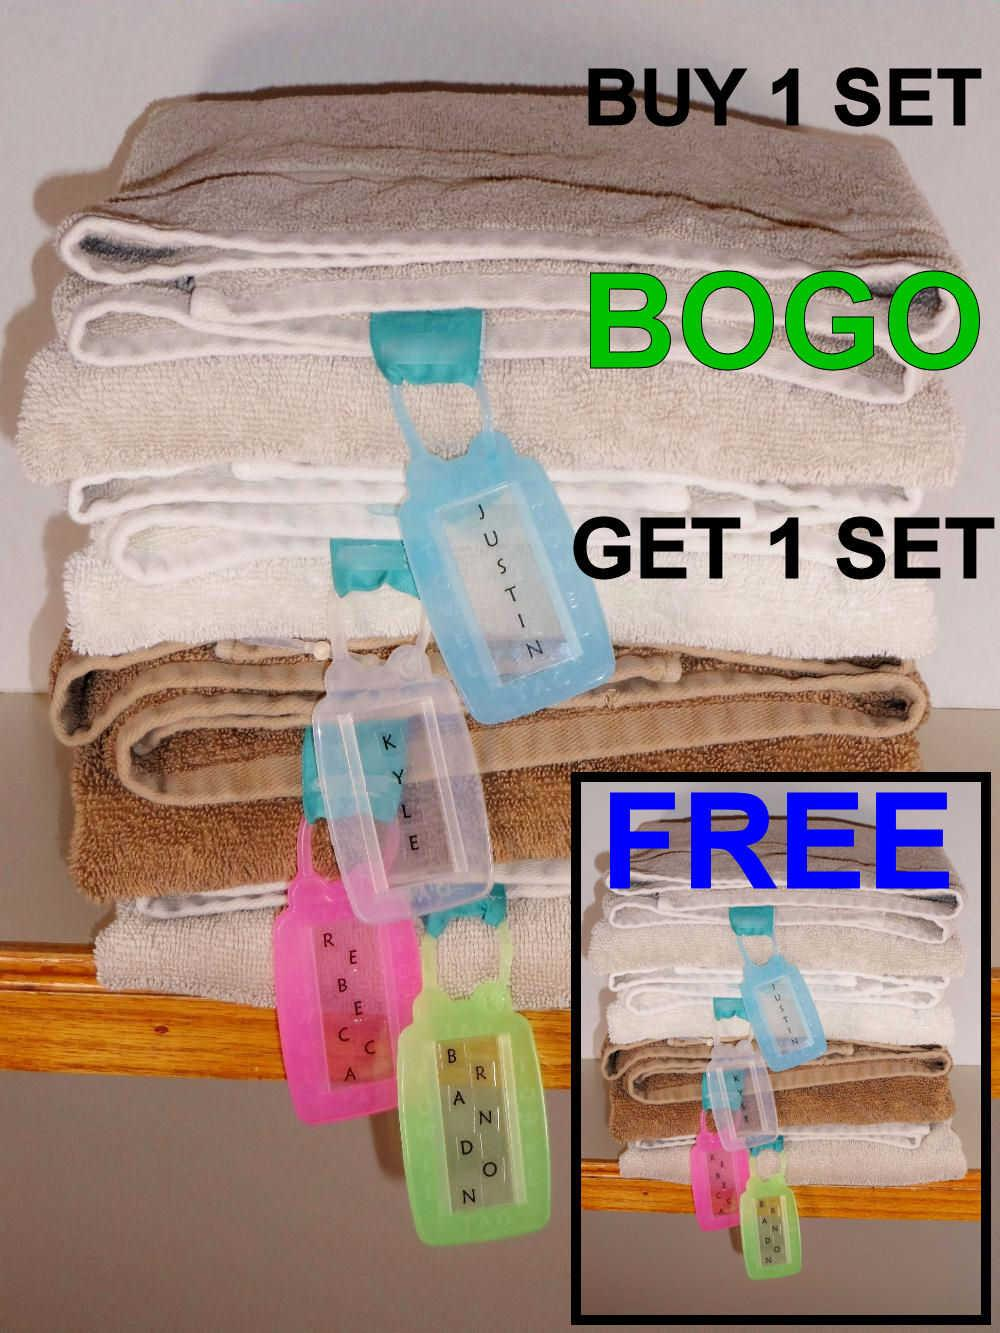 Bogo offer, sale, 2 for 1, buy 1 get 1